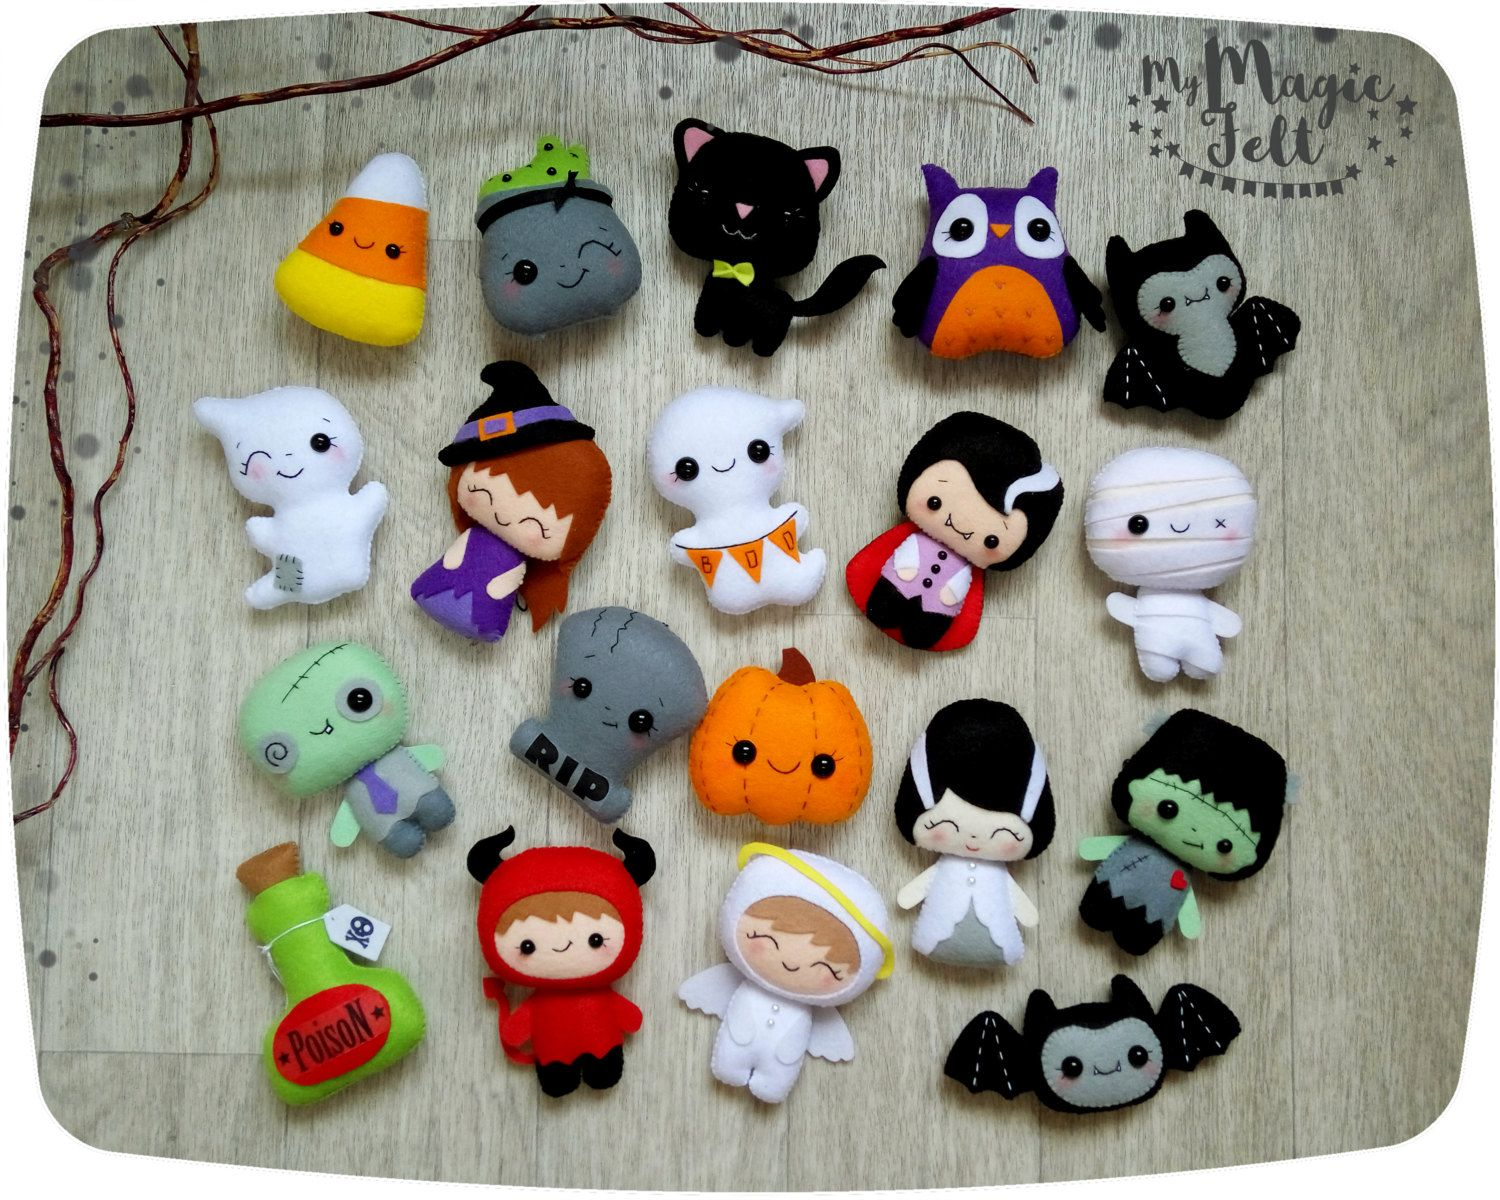 Halloween tree ornaments - Halloween Ornaments Cute Halloween Ornament Felt Halloween Favors Skary Felt Toys Halloween Decorations Party Favor Scary Halloween Gifts